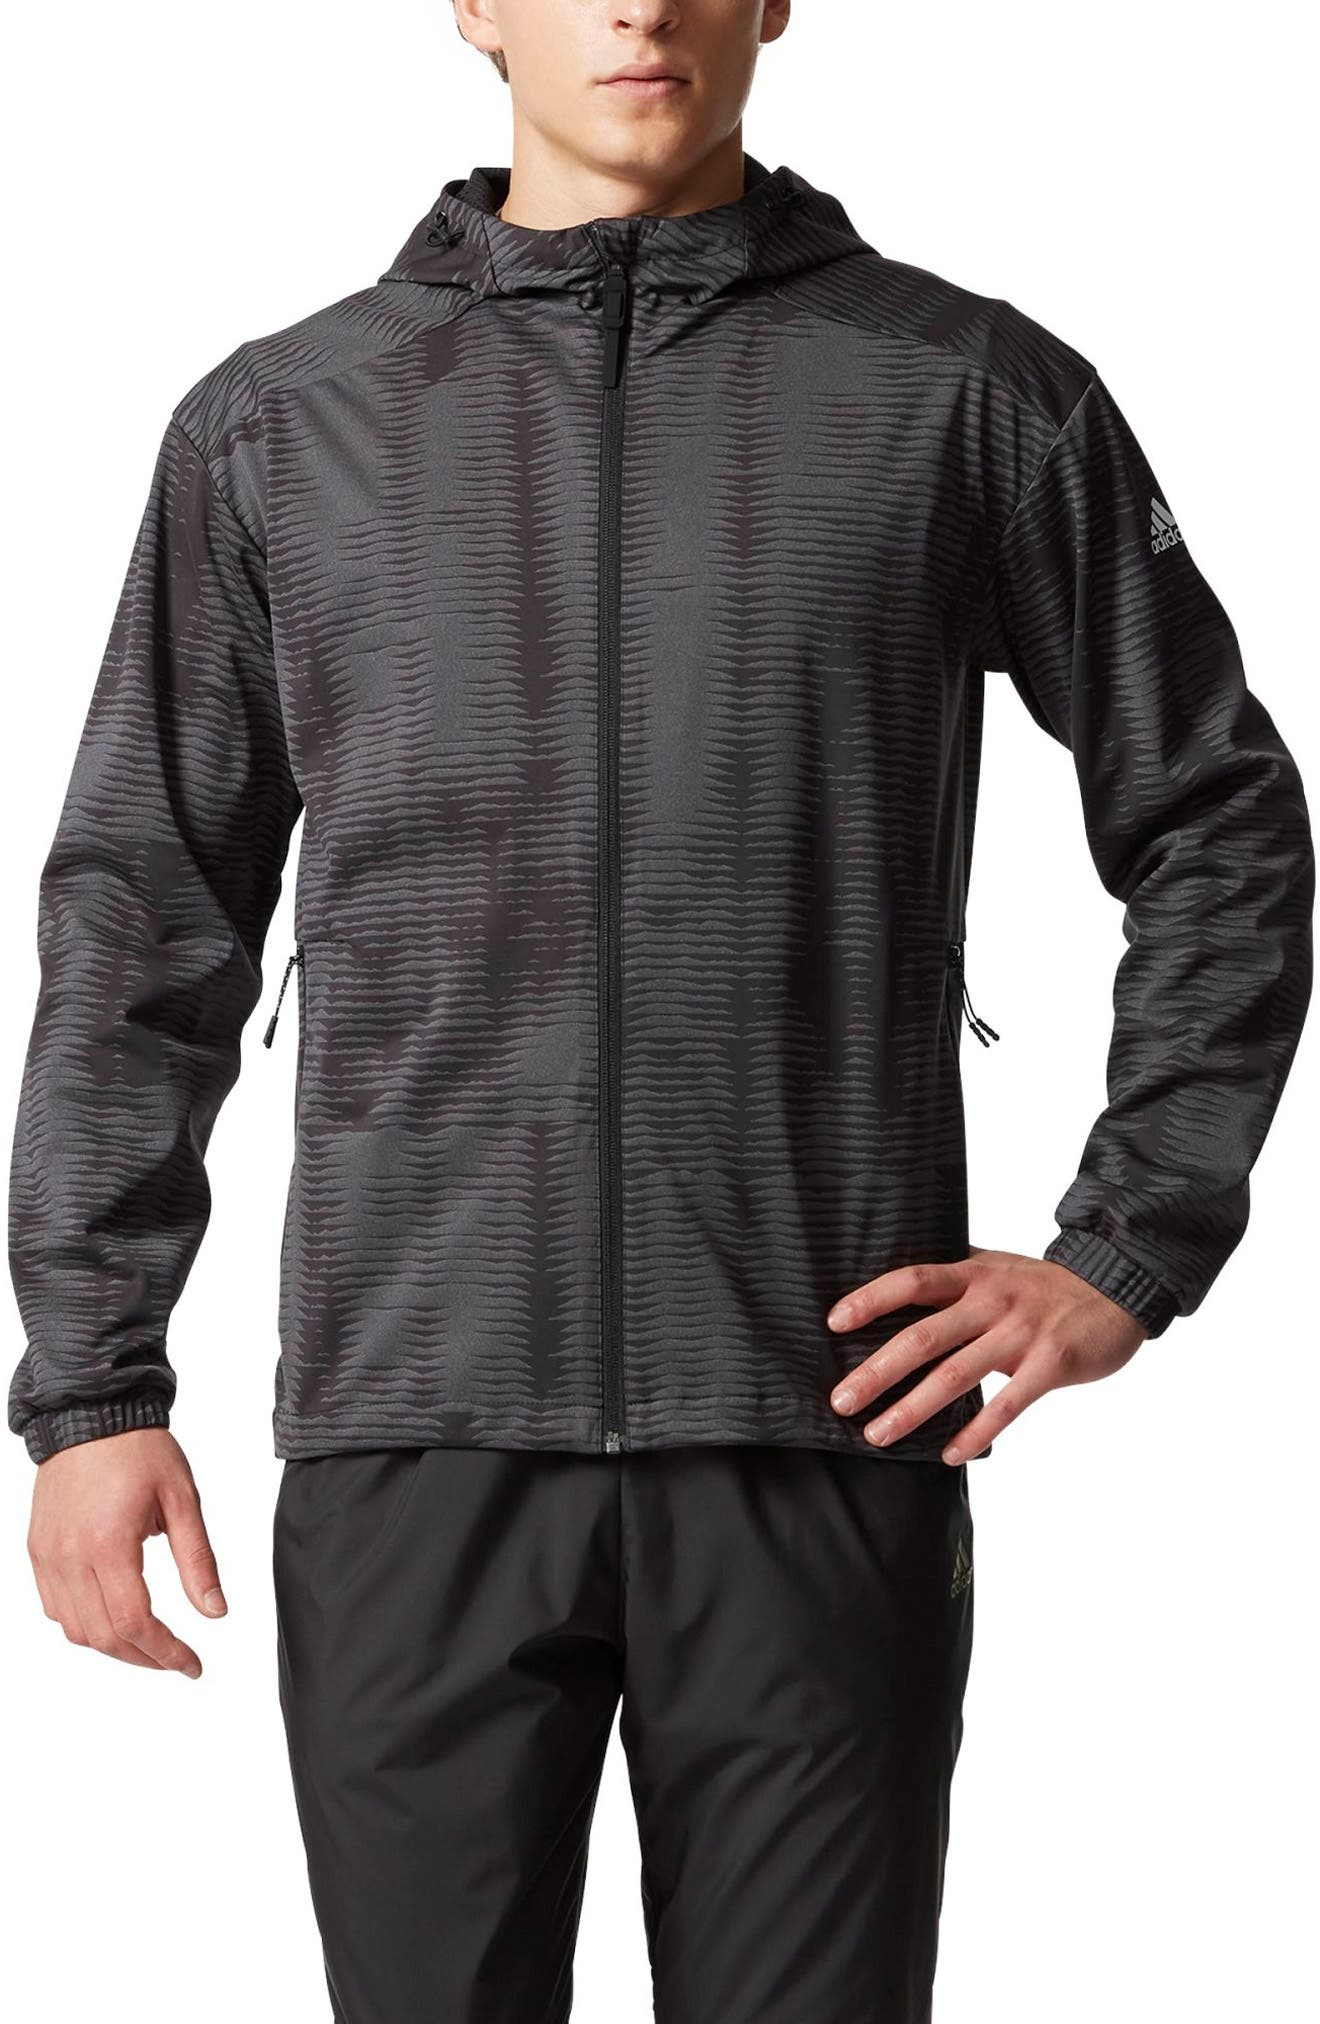 Woven Windbreaker,                             Main thumbnail 1, color,                             001